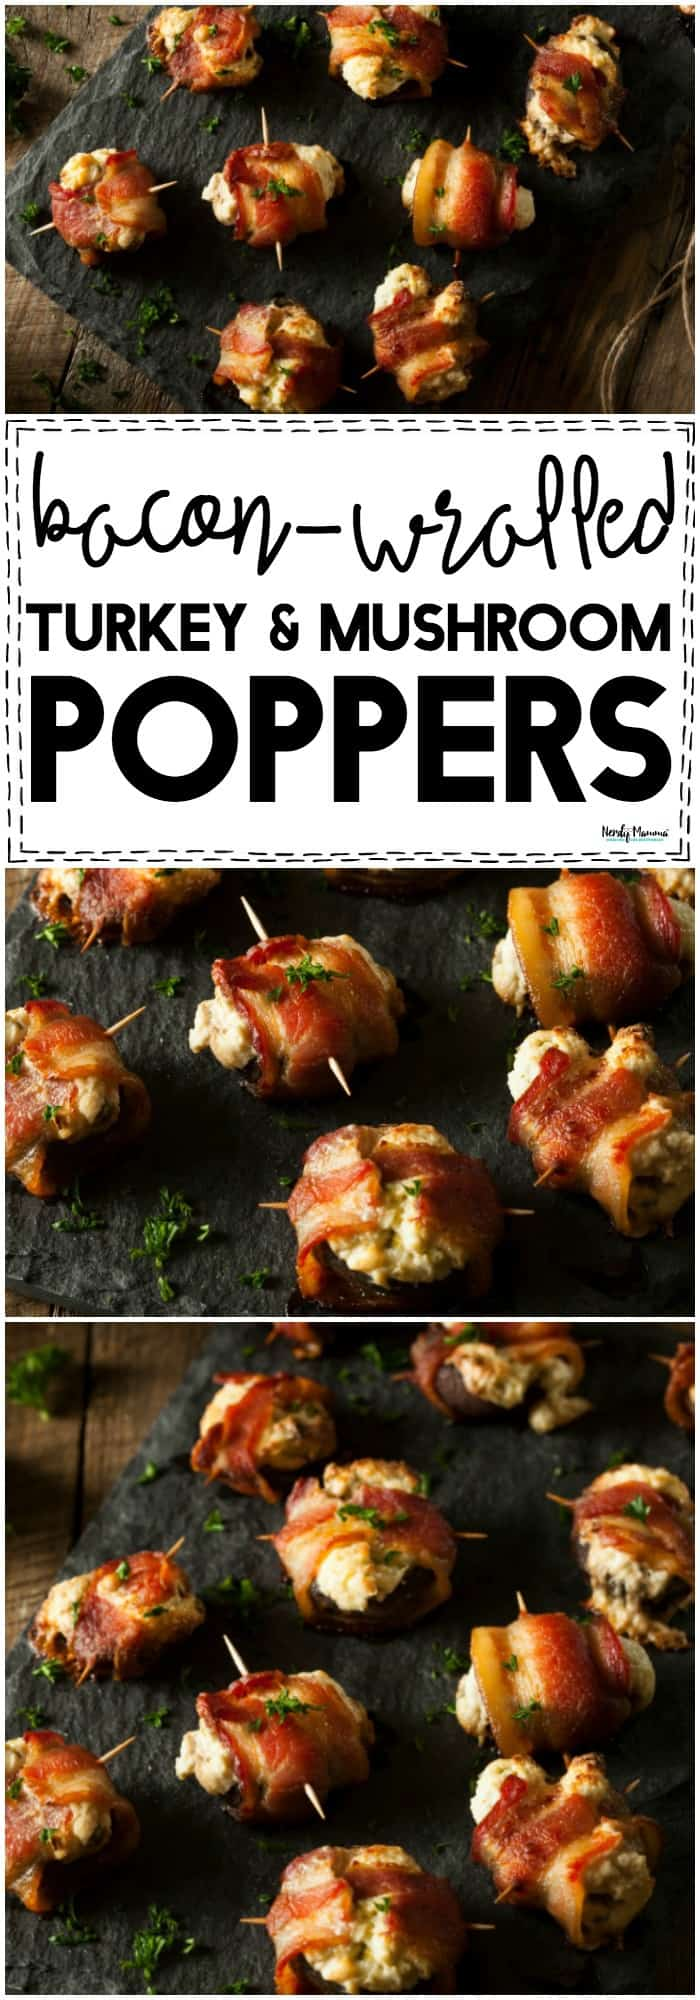 These bacon-wrapped turkey and mushroom poppers are seriously THE most delicious way to use leftover turkey! If you're looking at your leftovers from Thanksgiving and wondering what to do, make these!! #Thanksgiving #recipe #leftovers #turkey #bacon #poppers #appetizer #easyrecipes